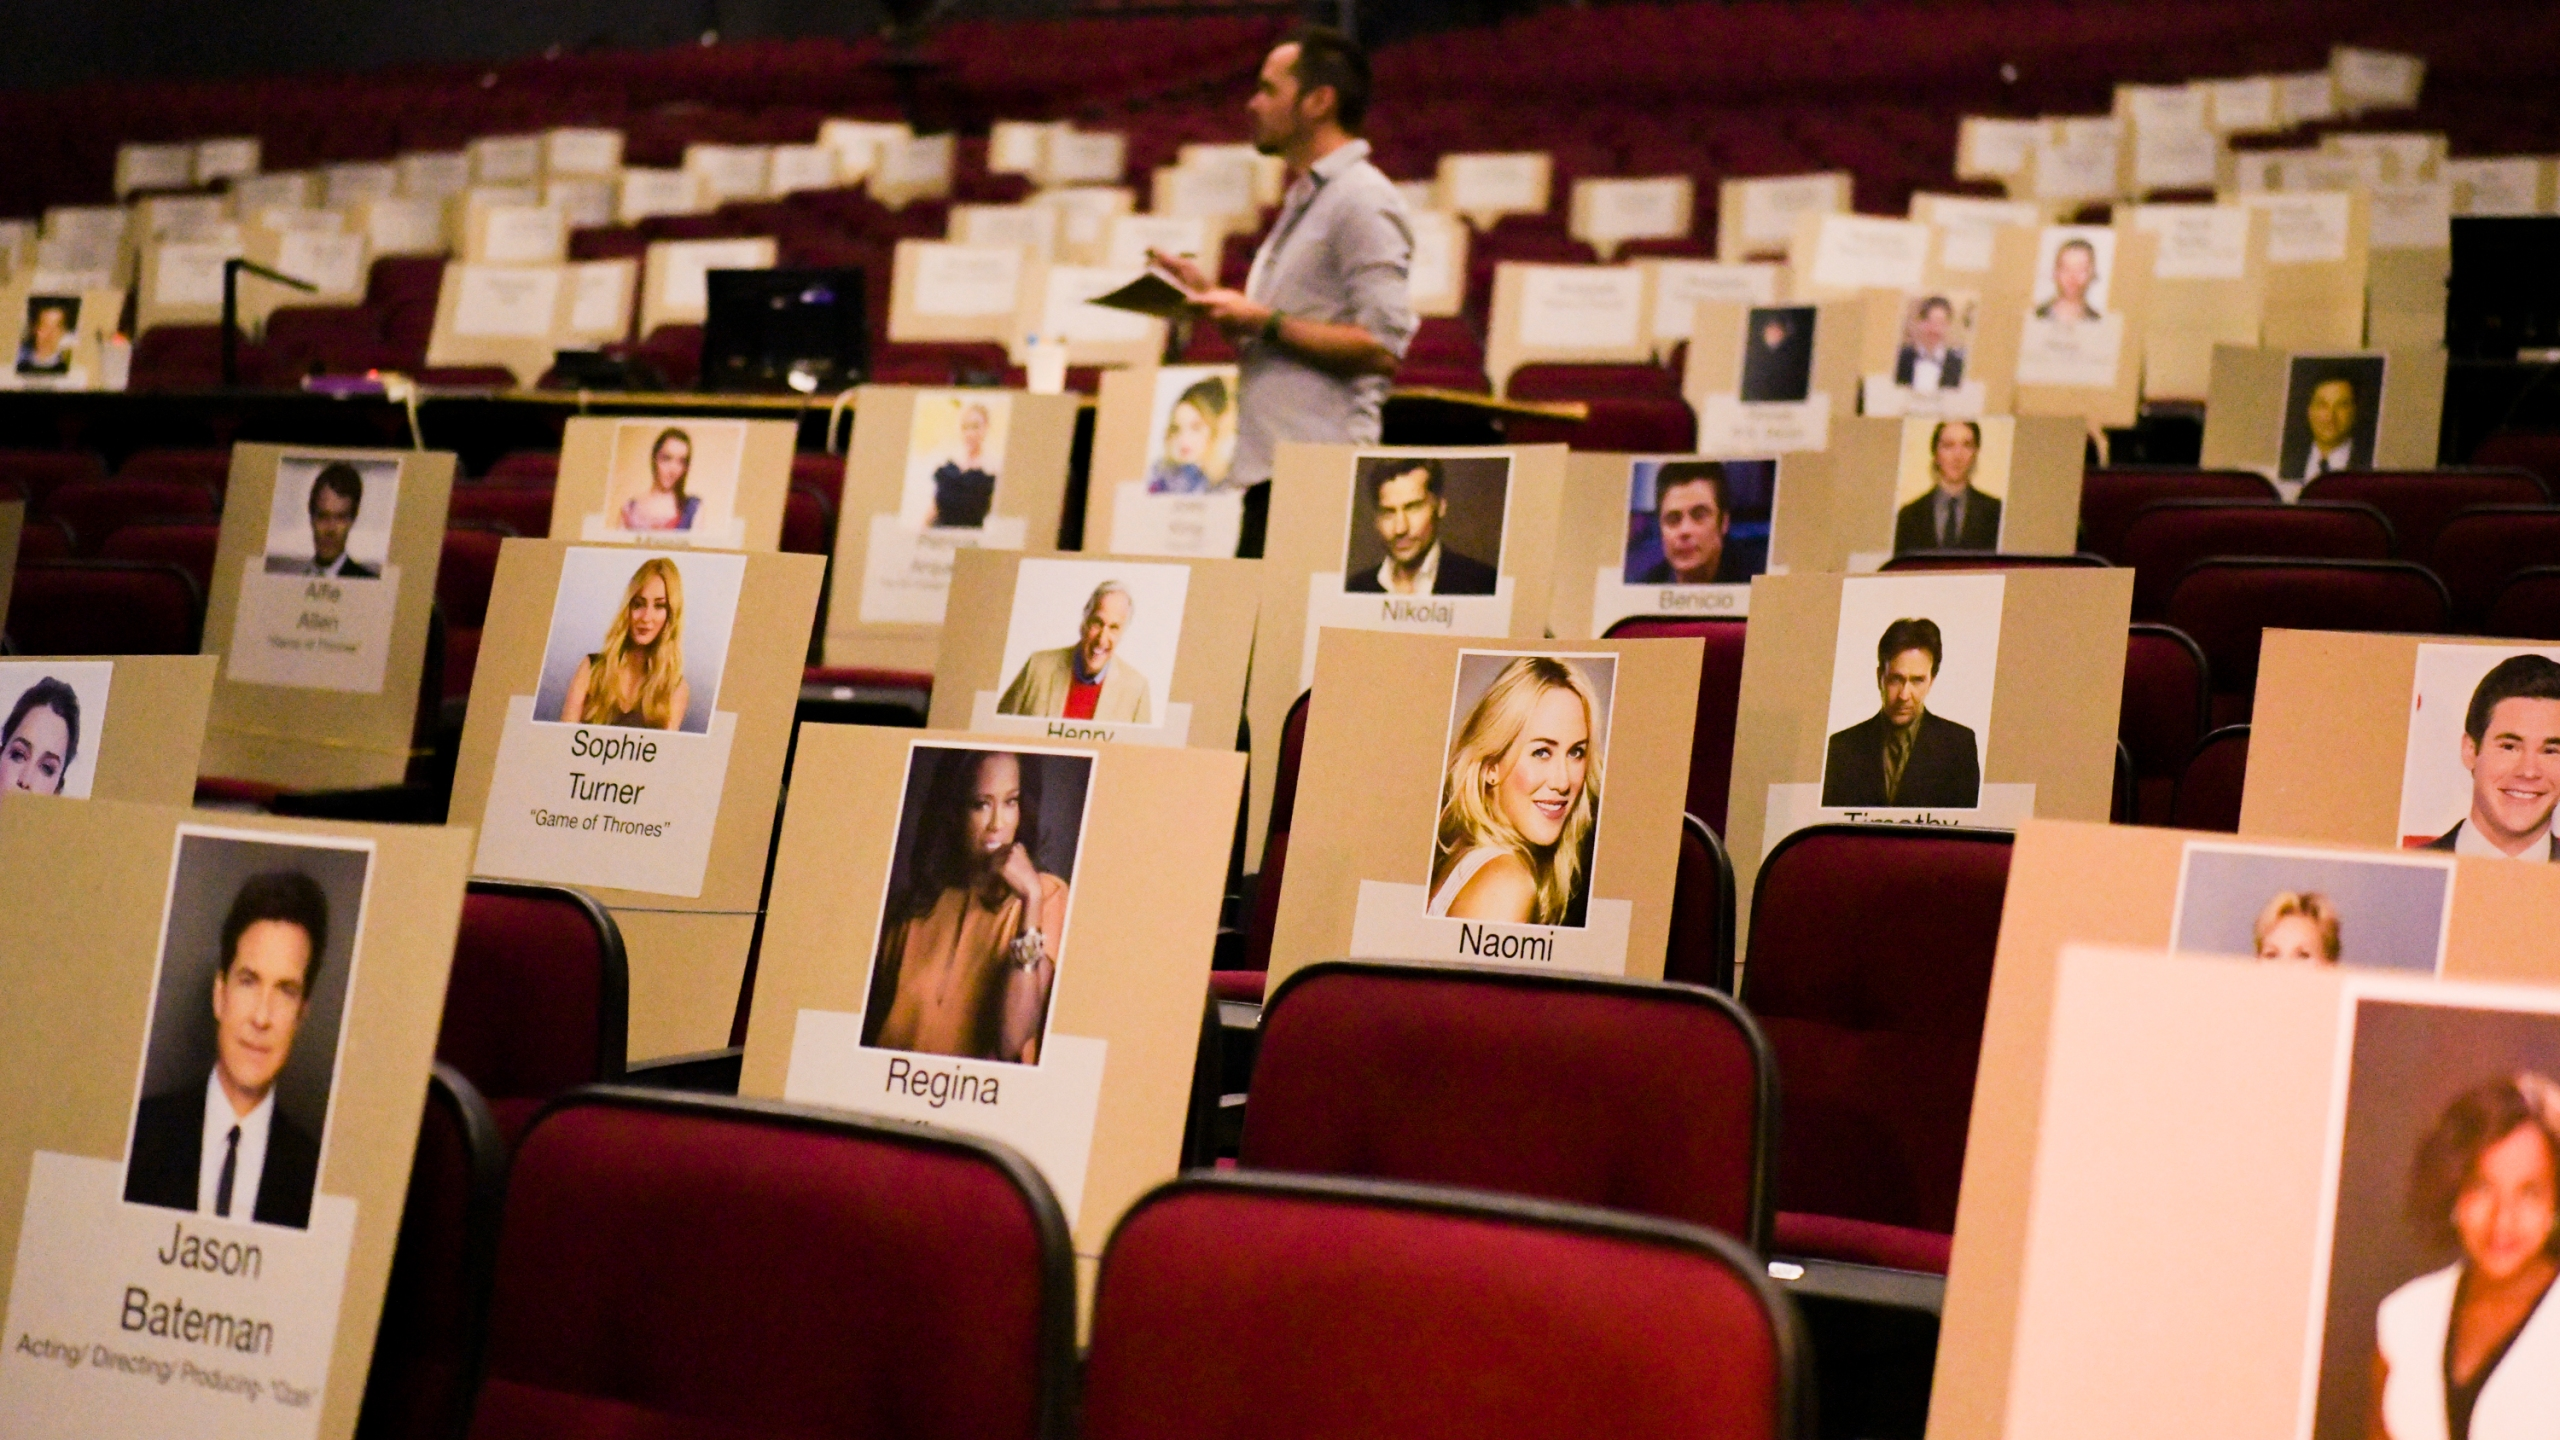 Face seat holders are seen at the 71st Emmy Awards preview day at Microsoft Theater on Sept. 19, 2019 in Los Angeles. (Credit: Rodin Eckenroth/Getty Images)